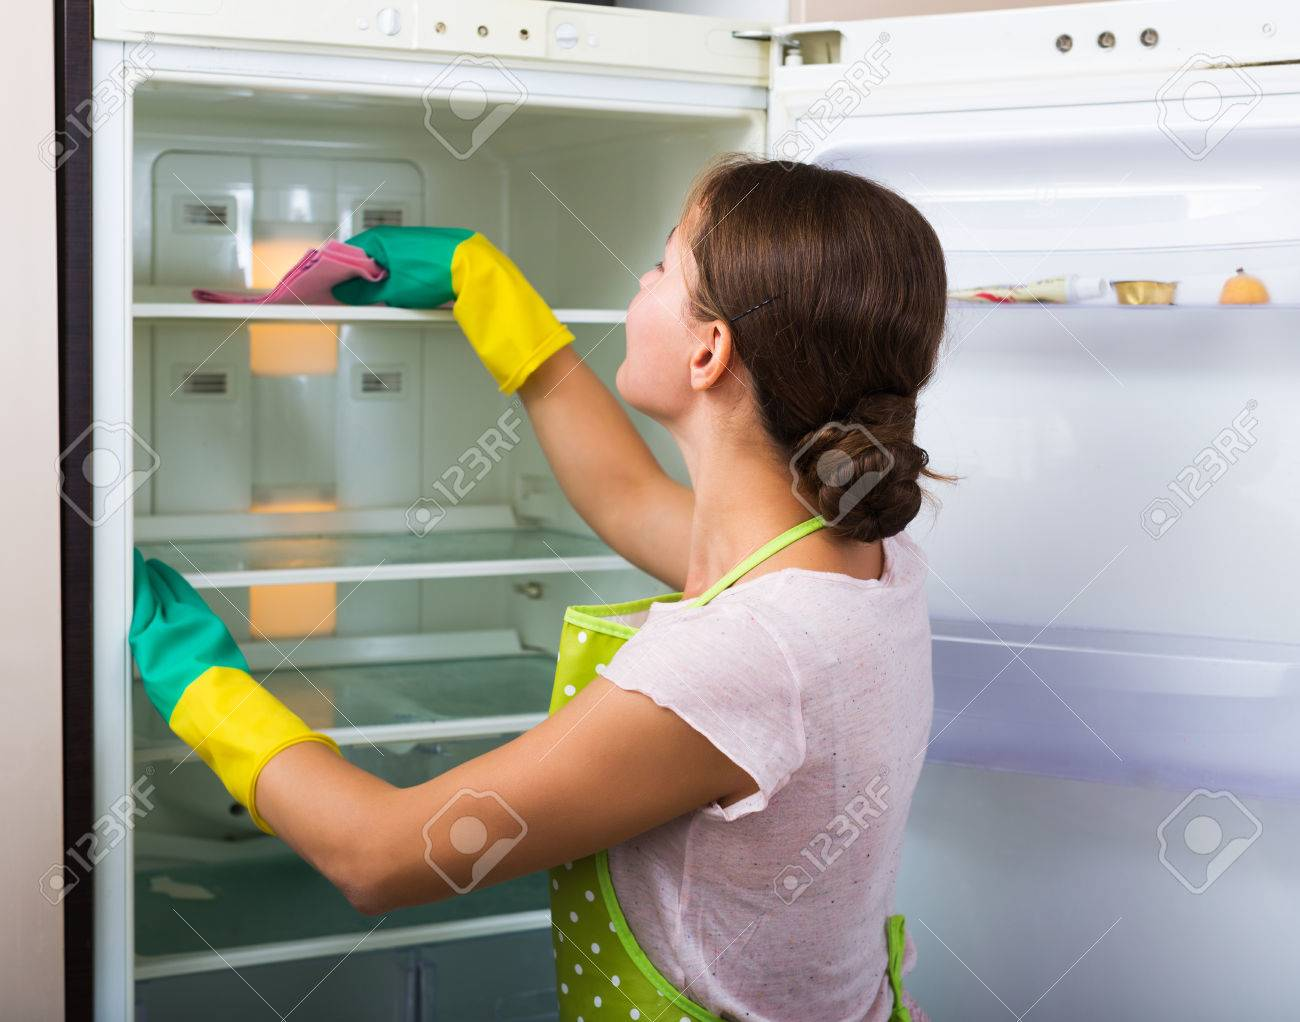 Adult housewife cleaning refrigerator inside and smiling Stock Photo - 46979493